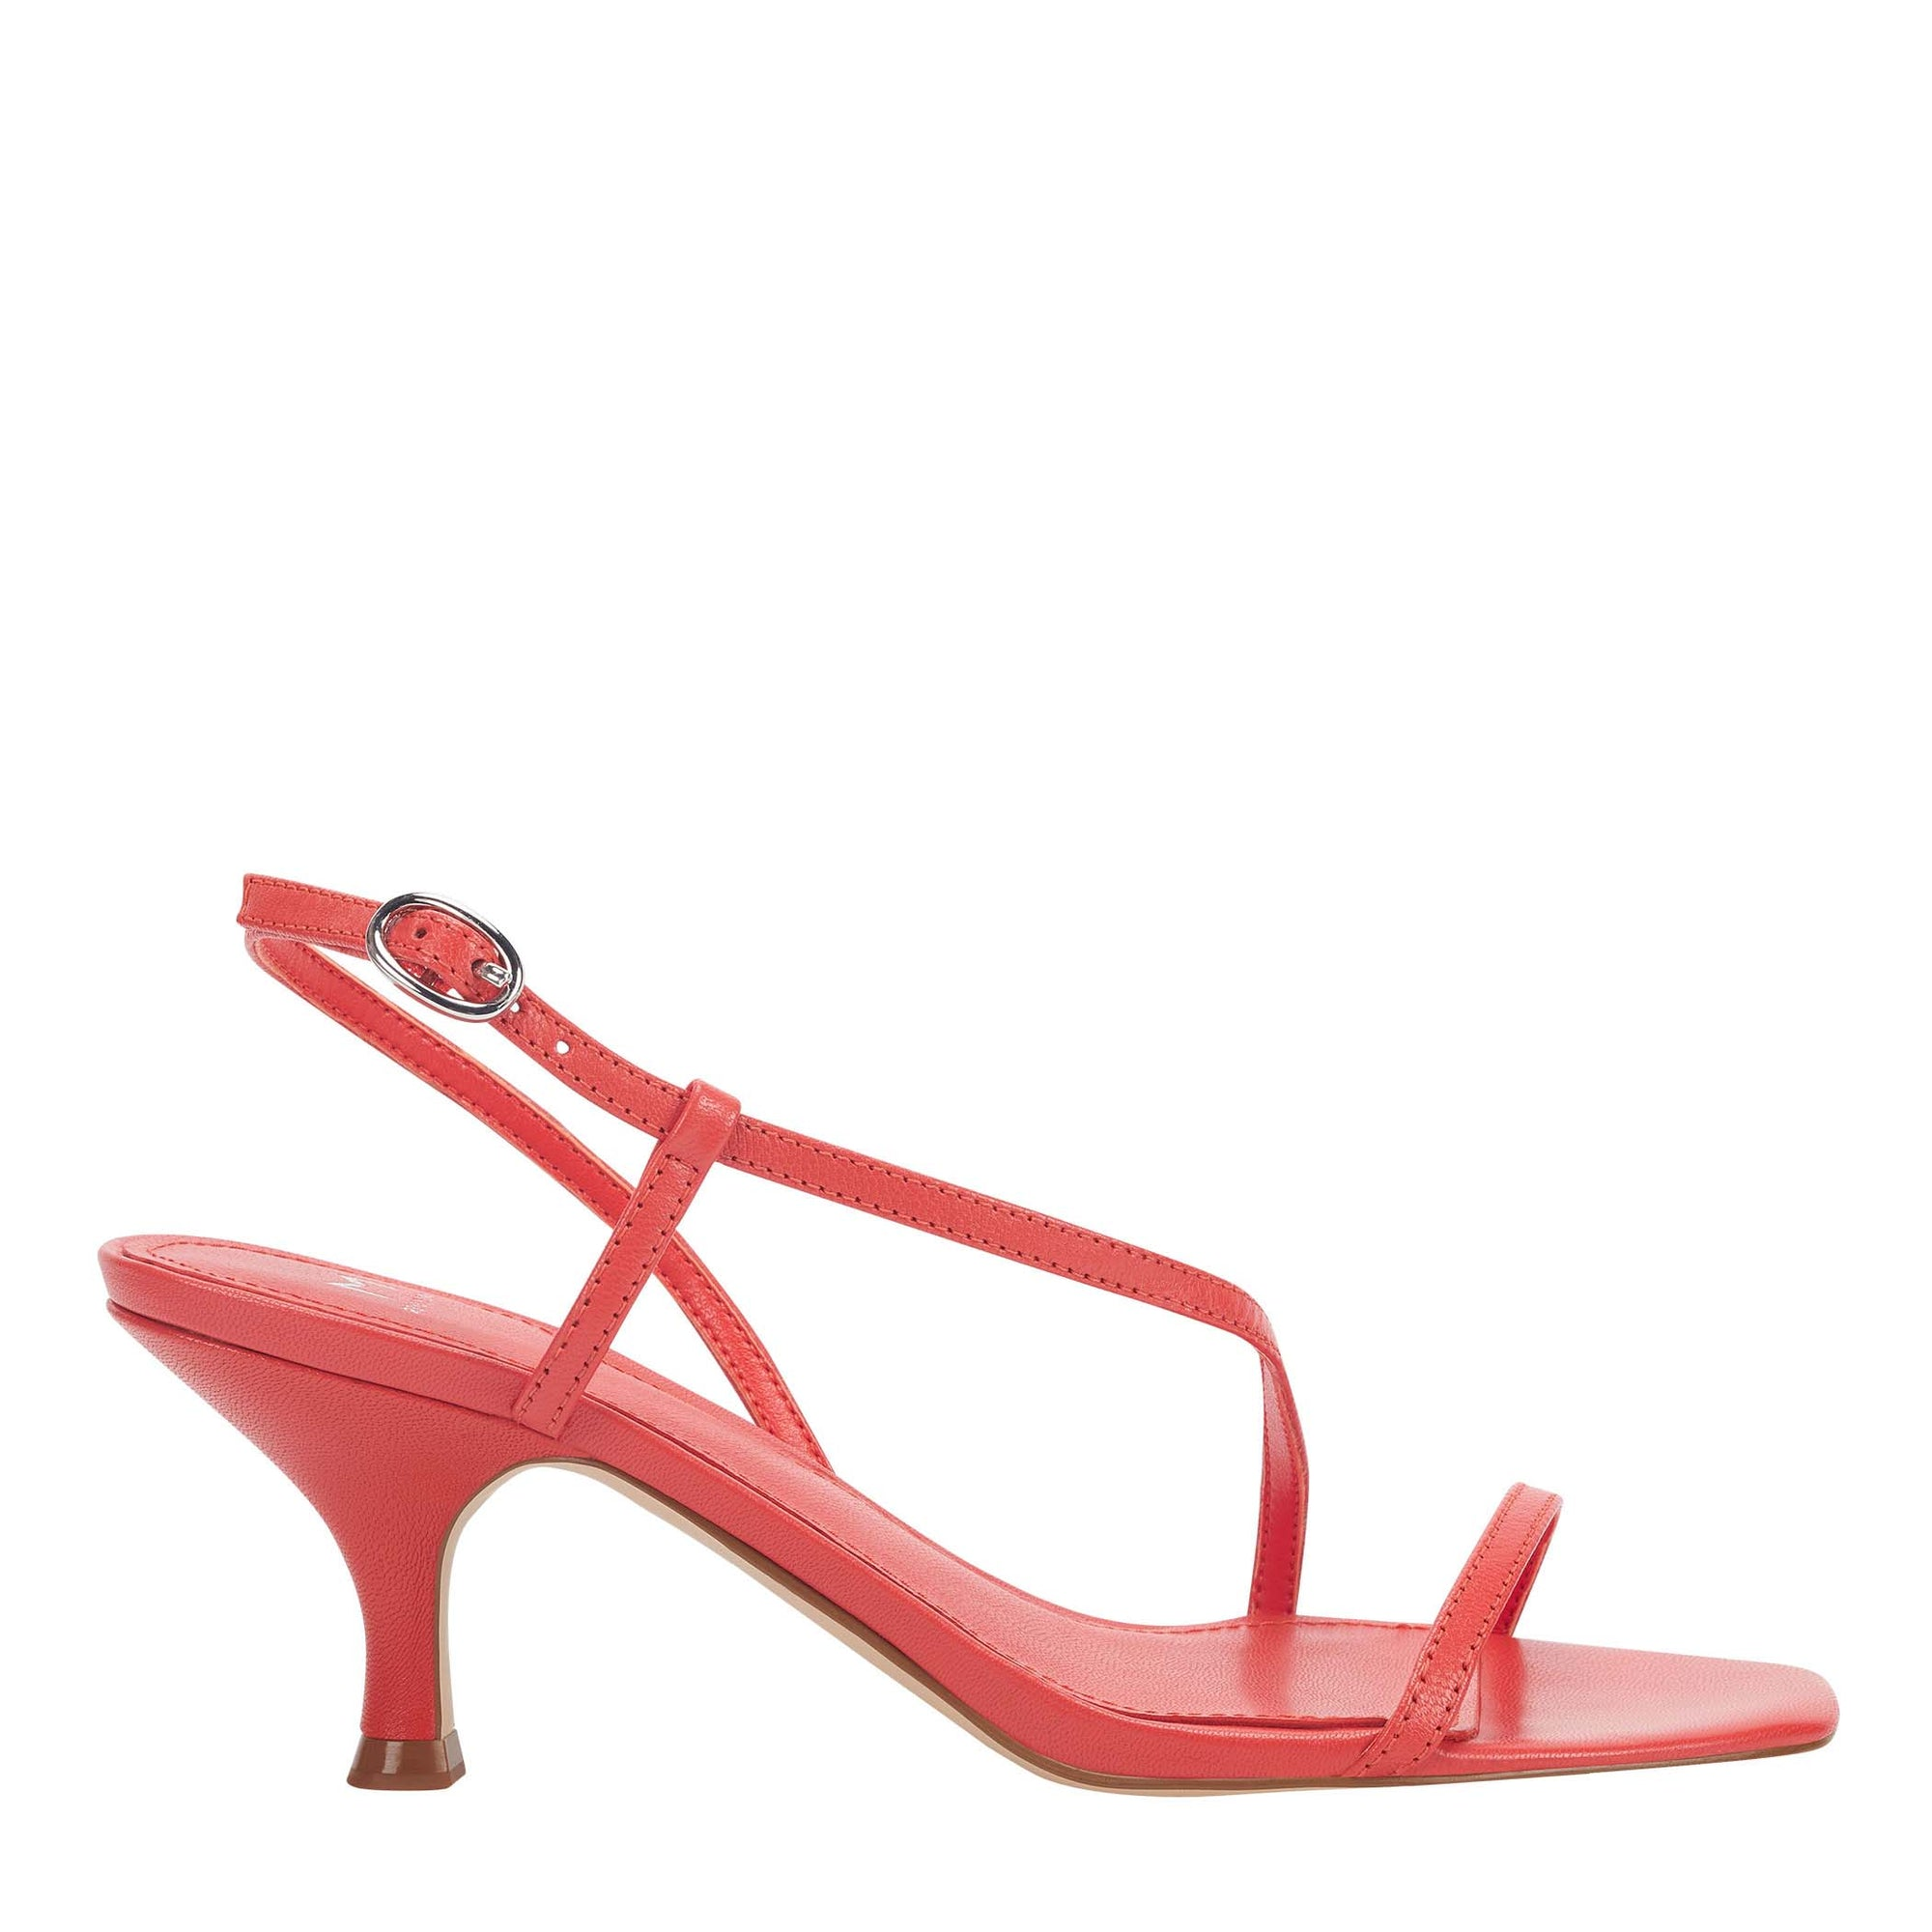 Gove Strappy Heeled Sandal